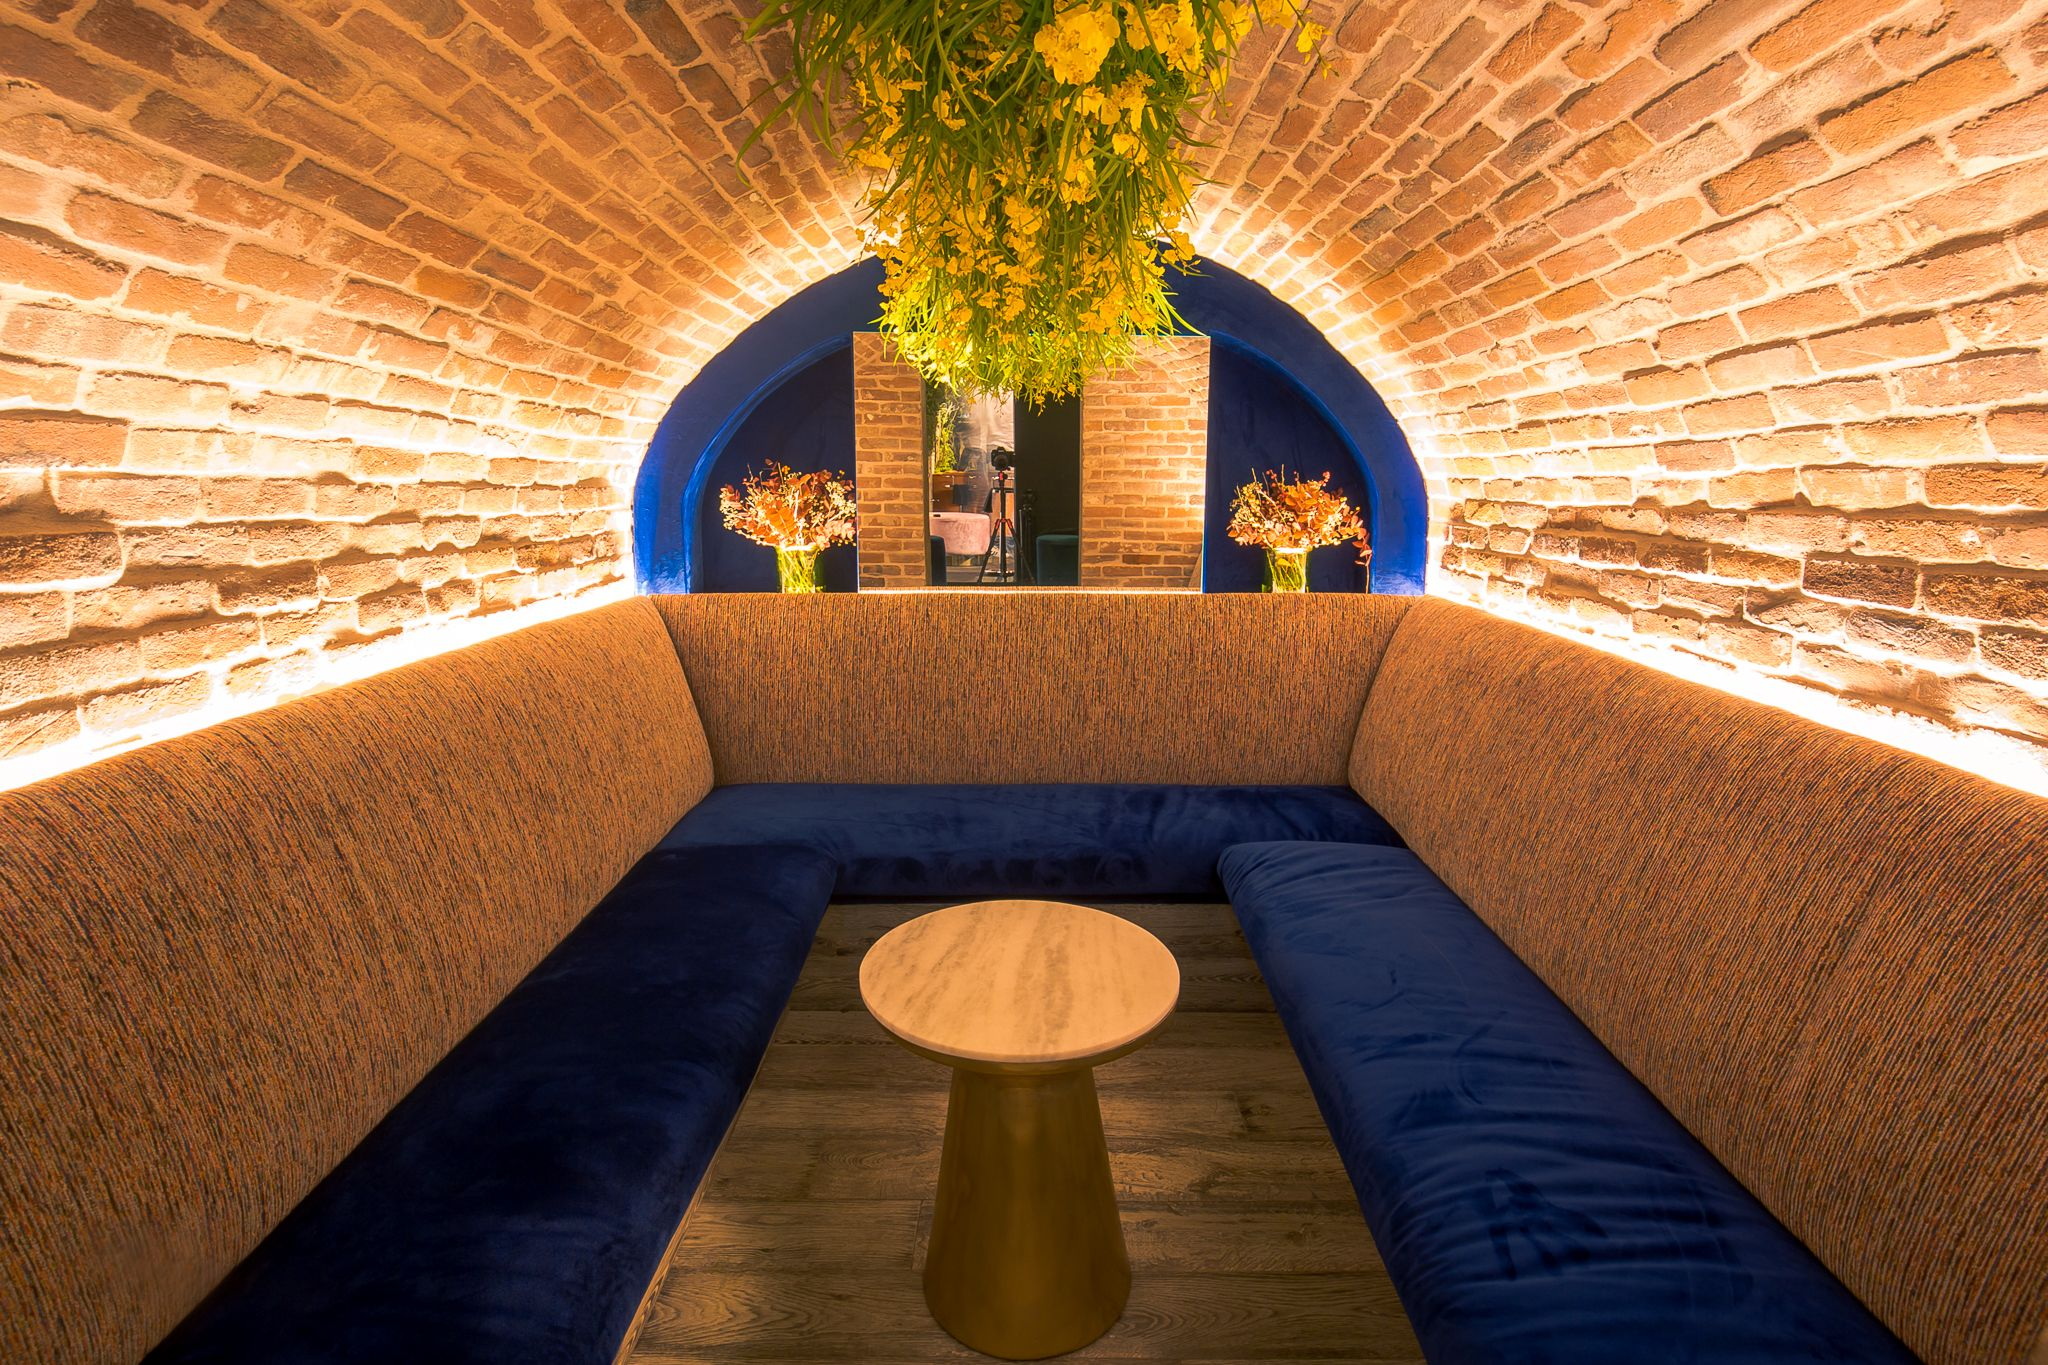 London's Best Bars To Grab A Drink